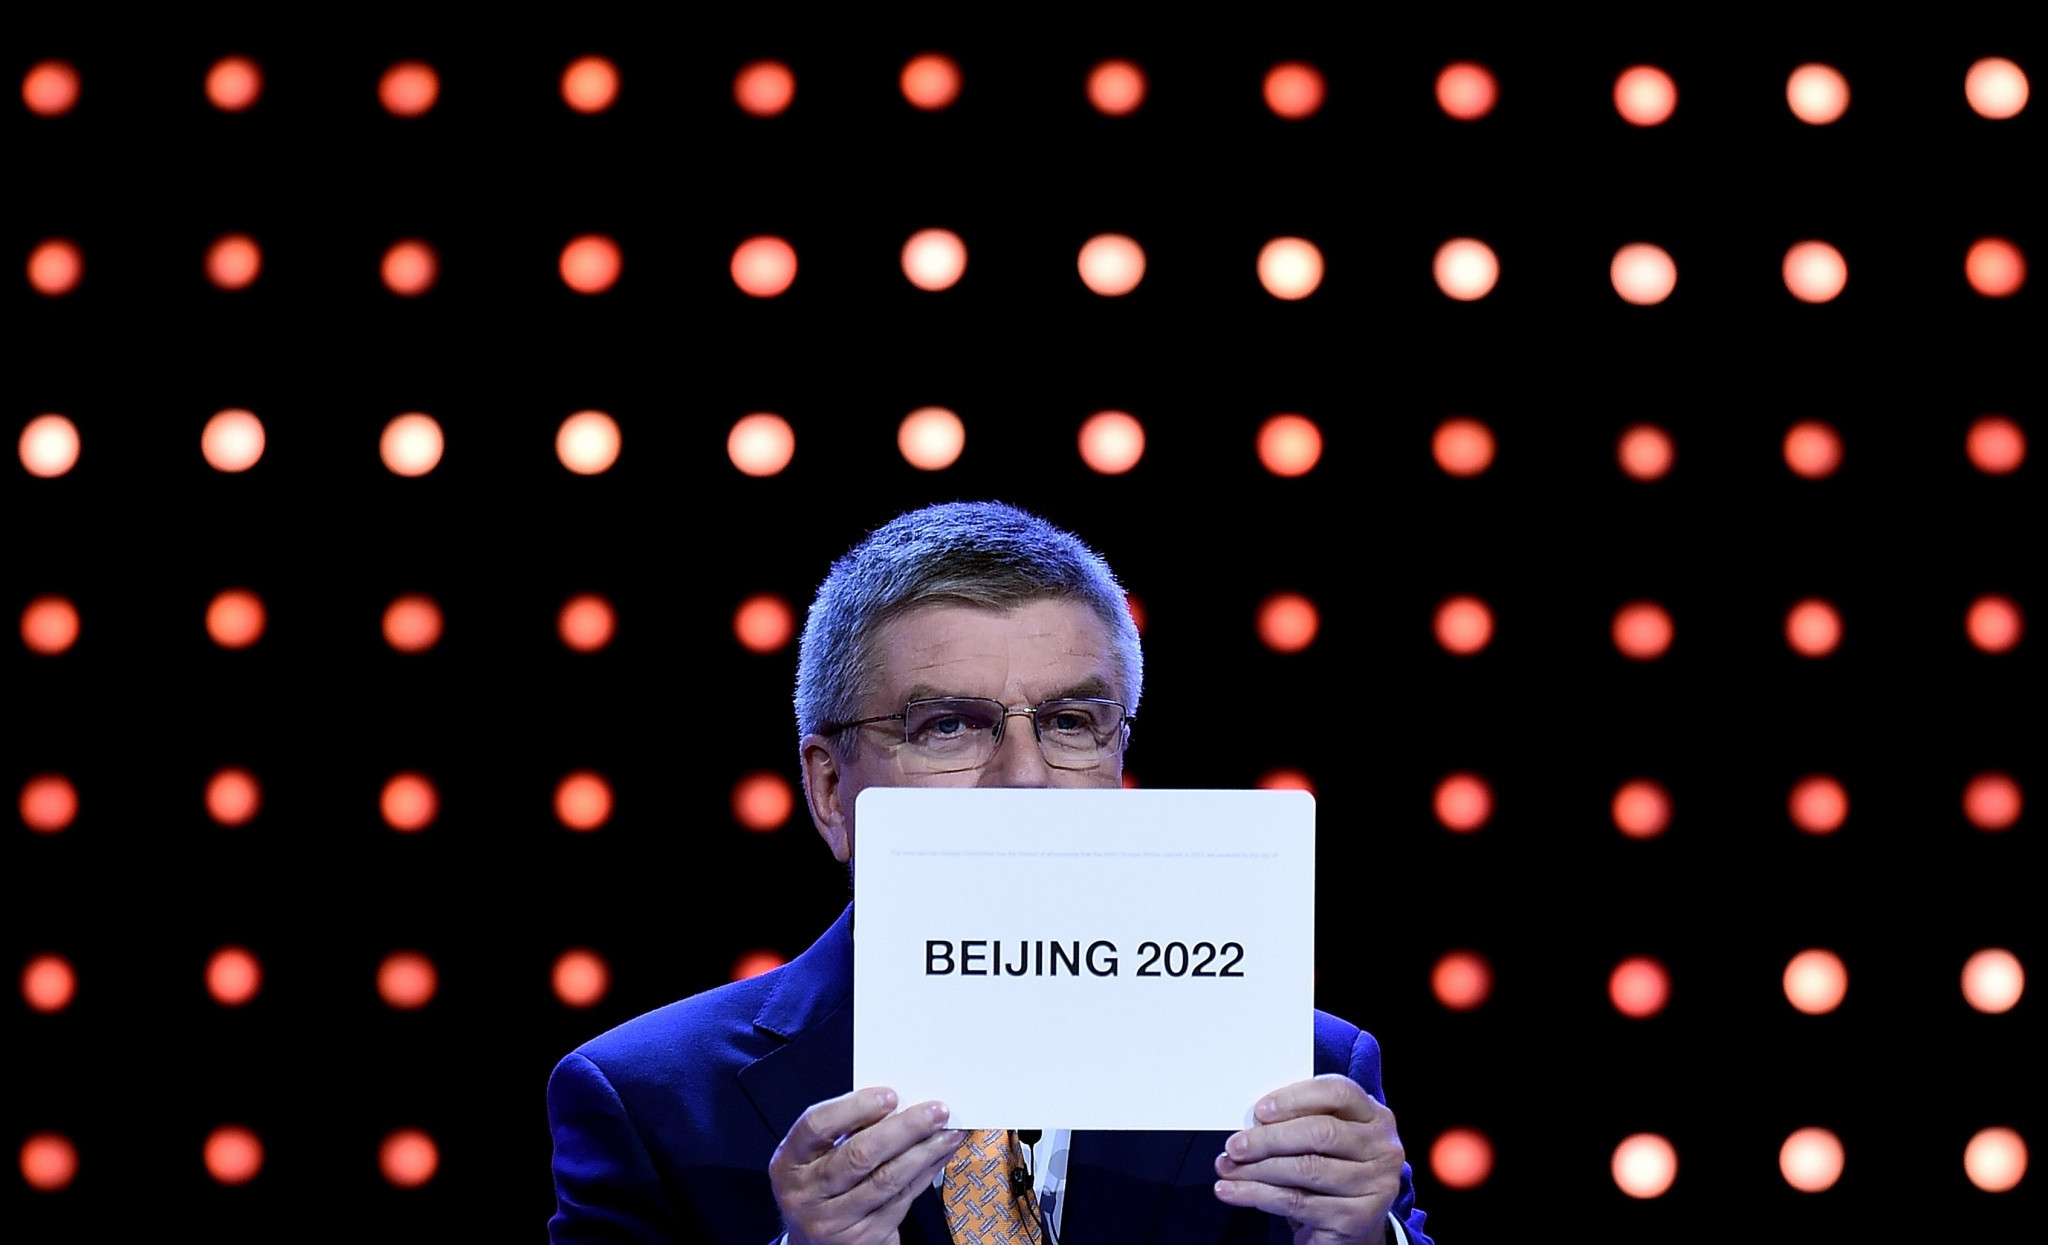 Beijing 2022 celebrate three-year anniversary of being awarded Olympics and Paralympics